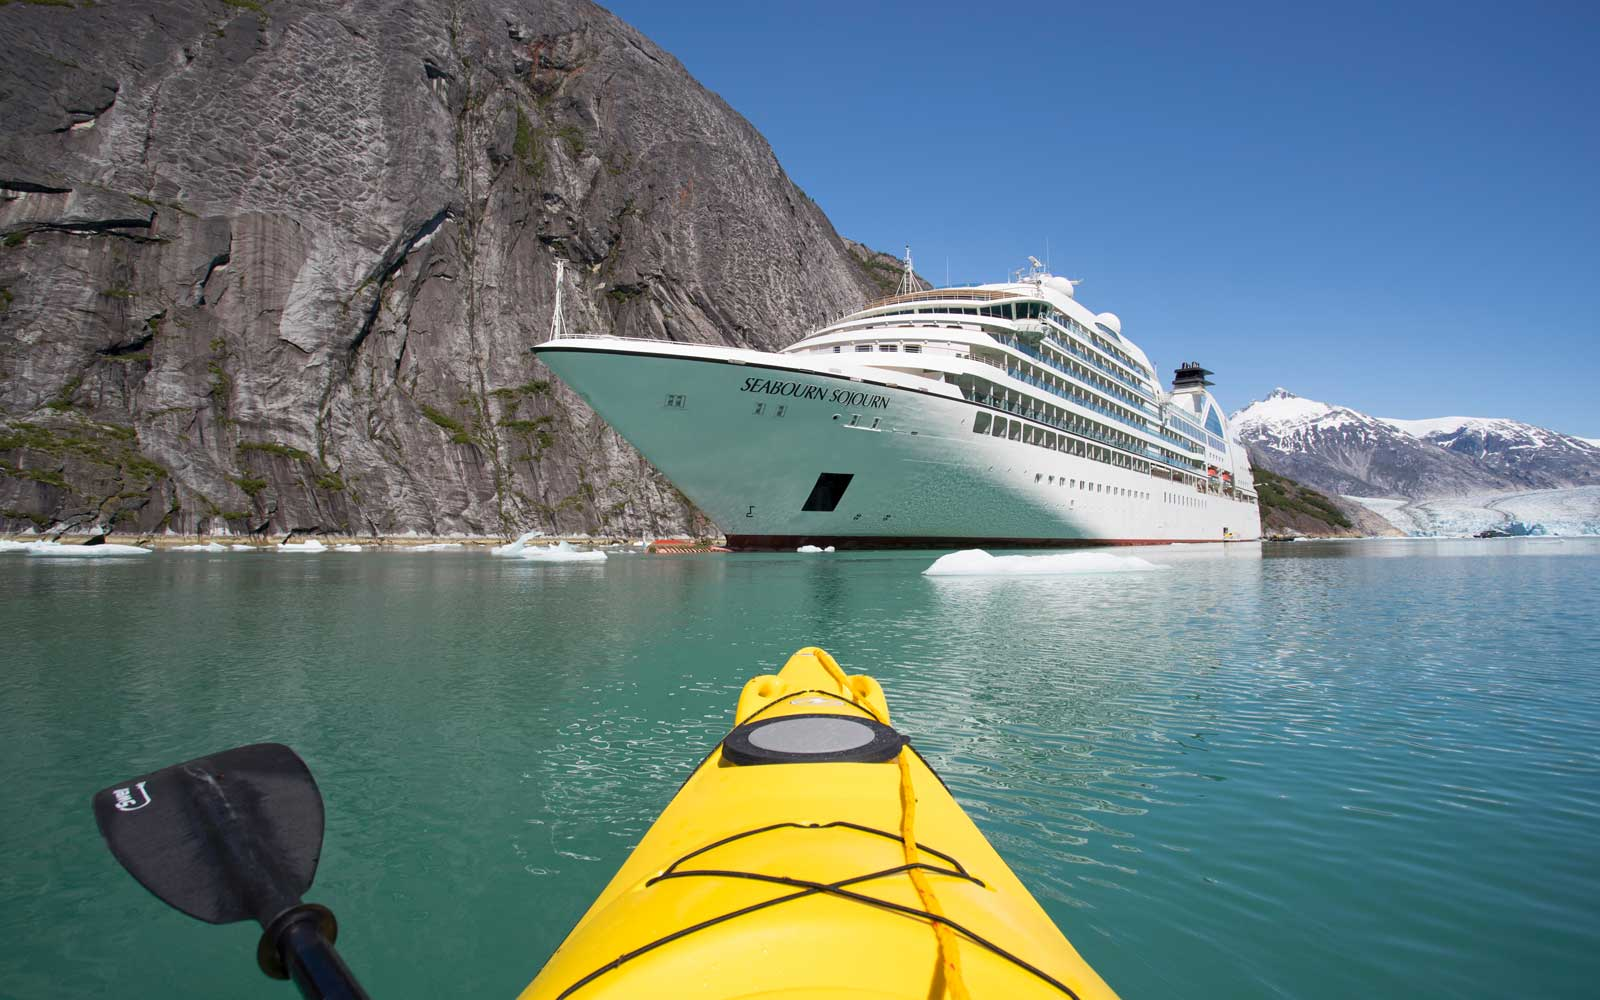 Adventure cruising in Alaska with Seabourn